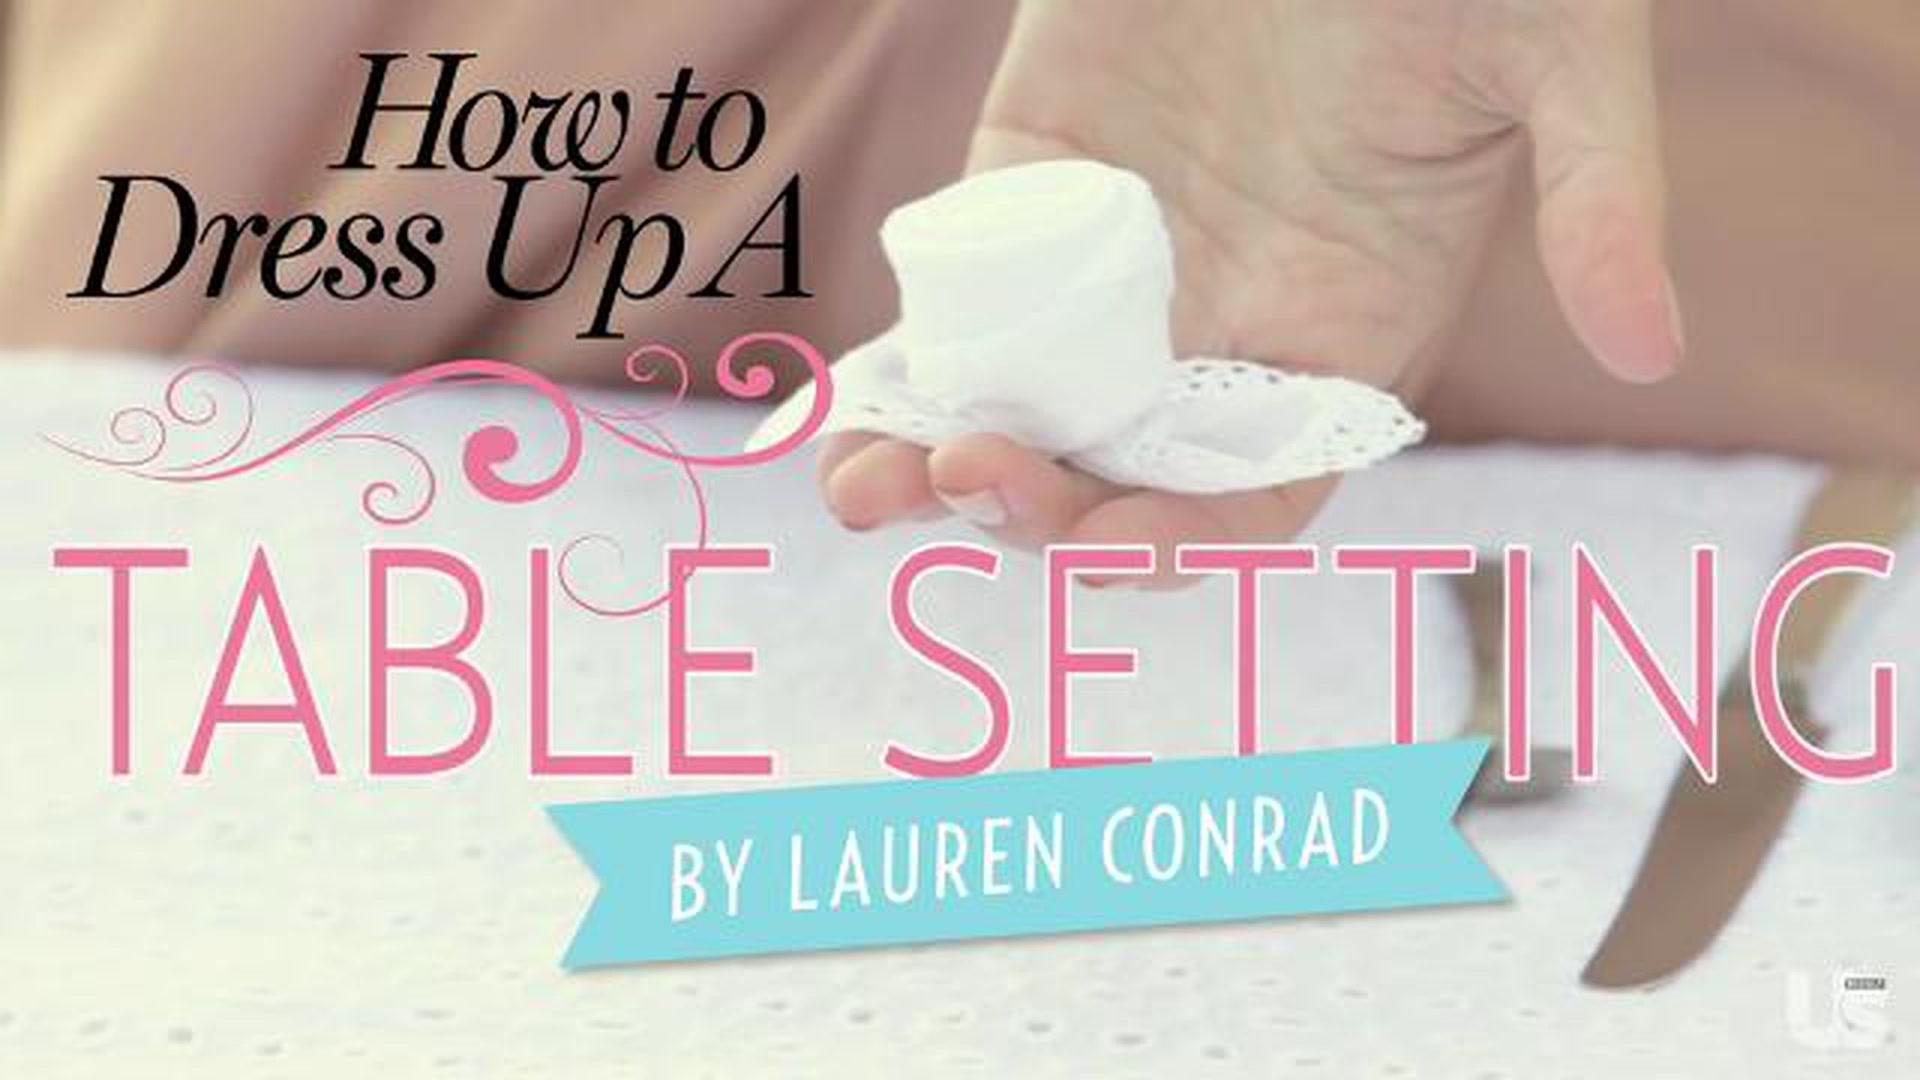 Lauren Conrad - How To Dress Up A Table Setting